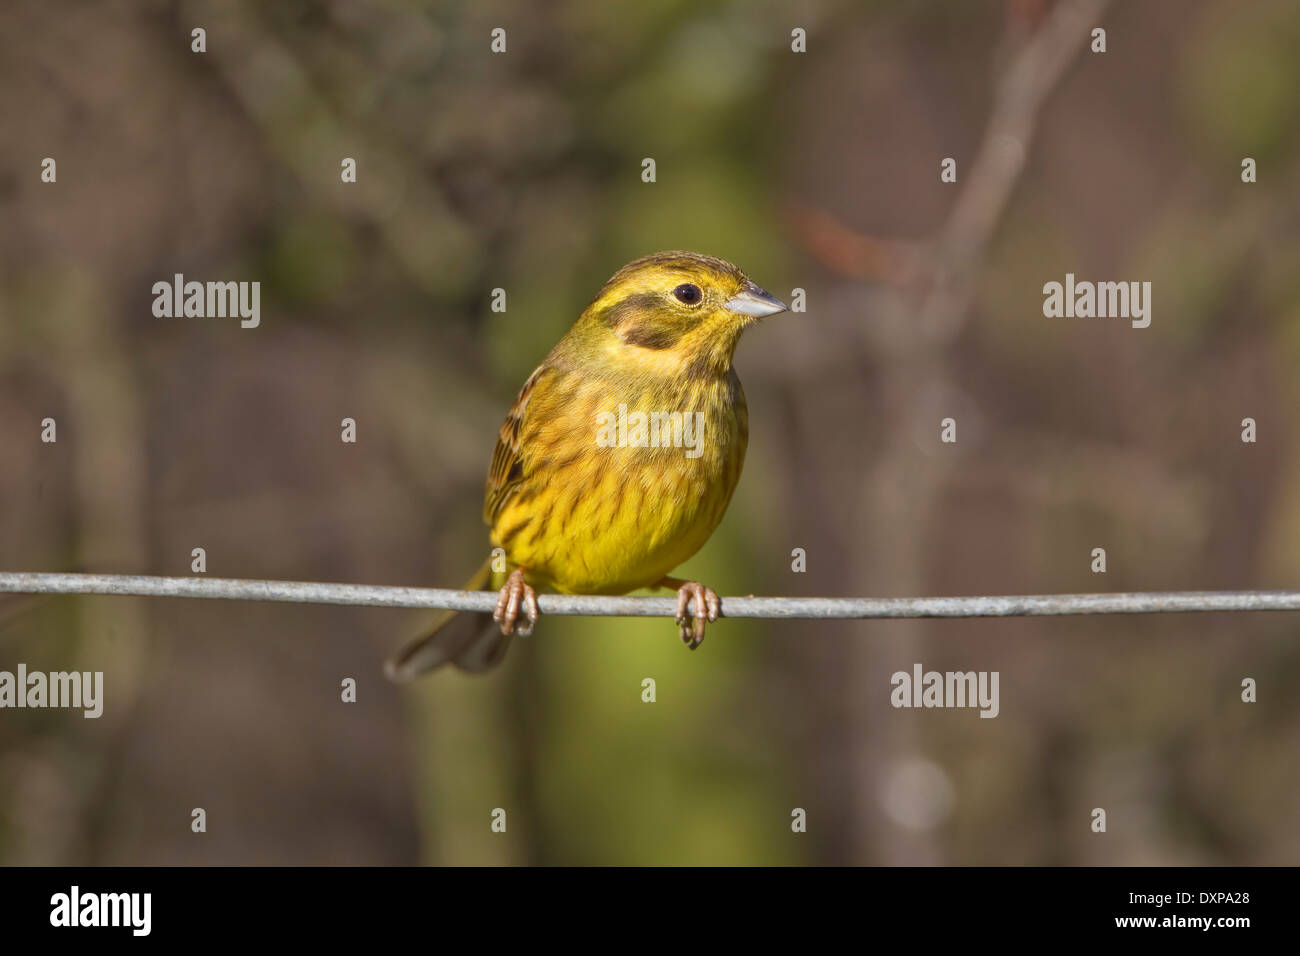 Yellowhammer male Emberiza Citrinella close up perched on a fence wire - Stock Image